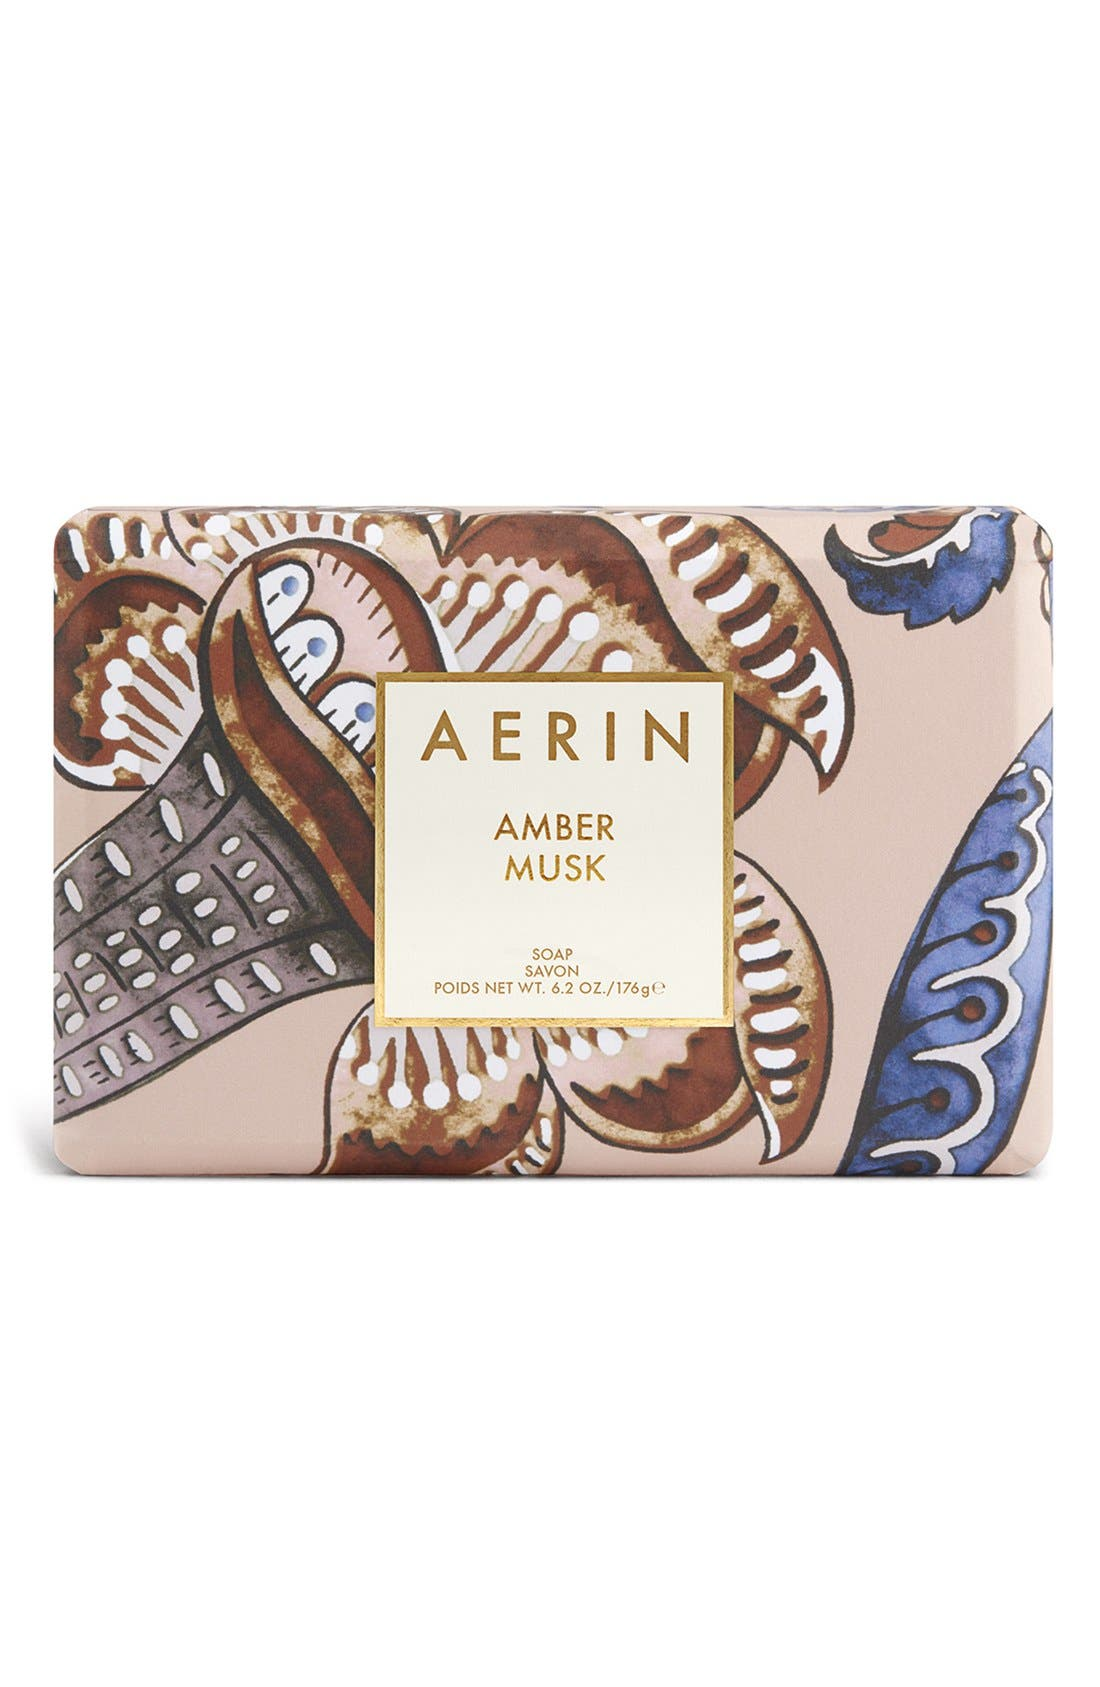 AERIN Beauty Amber Musk Soap,                         Main,                         color, 000